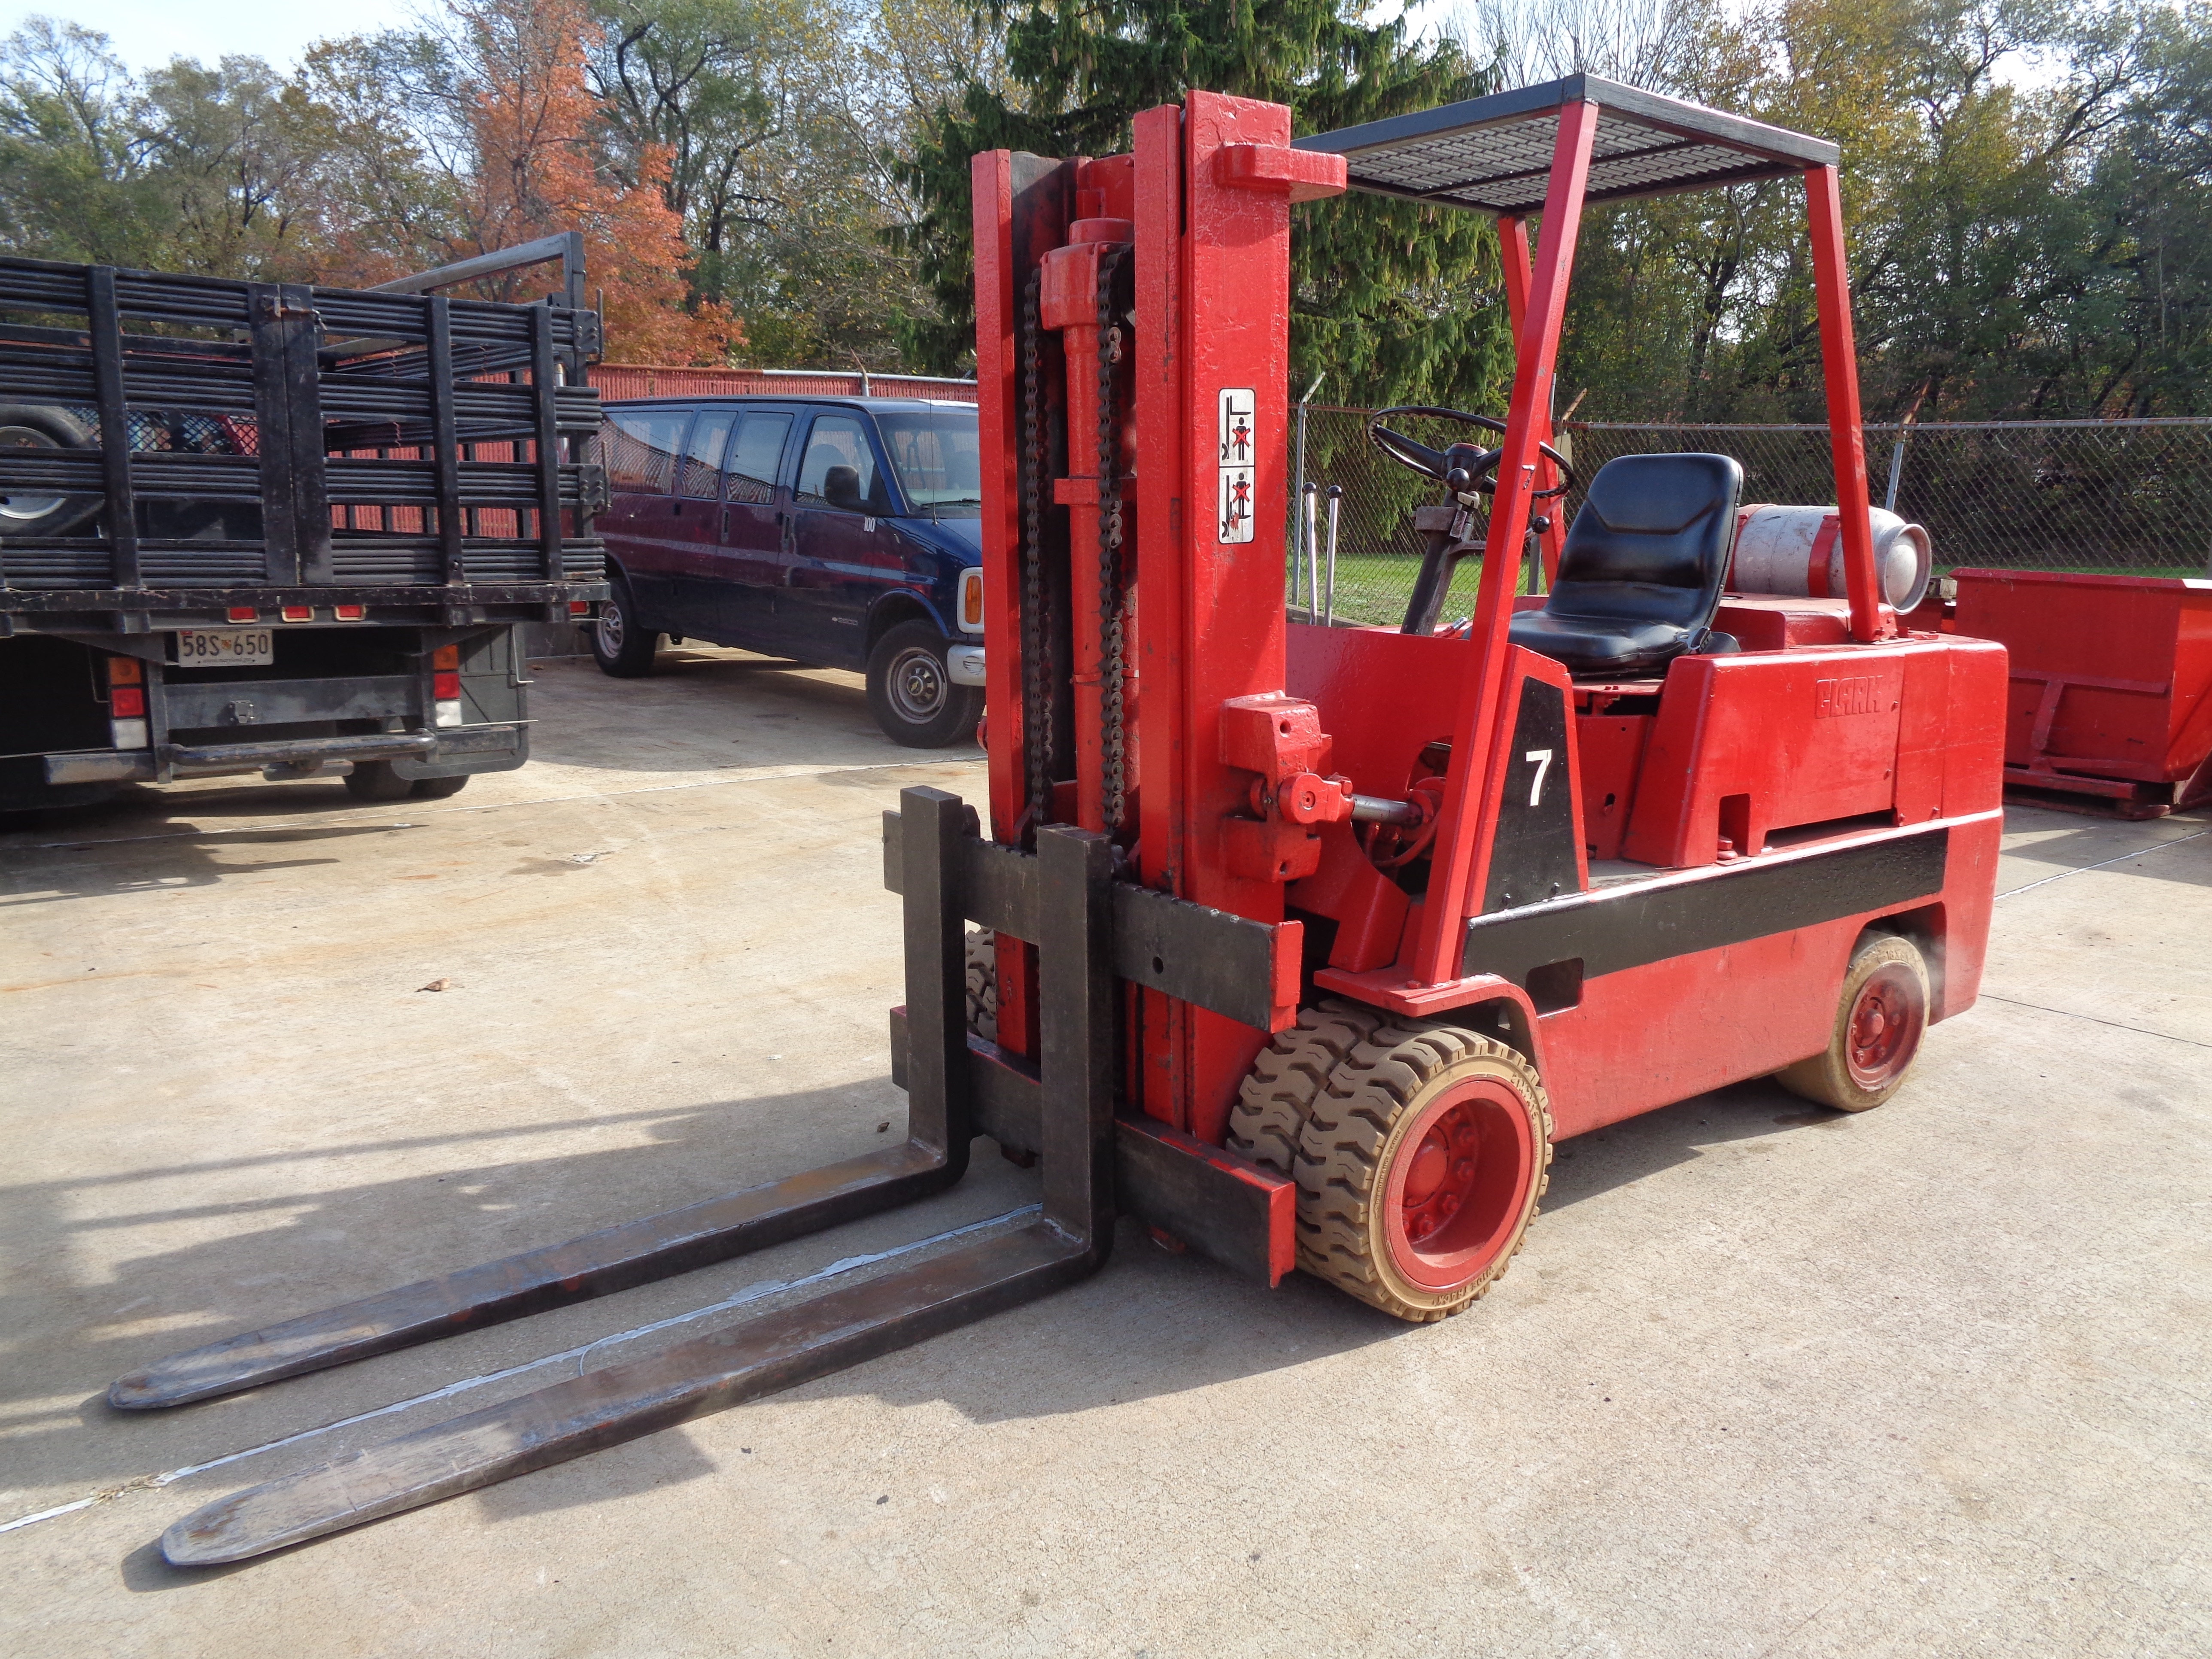 Clark C500-H120 Forklift- 12,000 lbs - Image 3 of 10